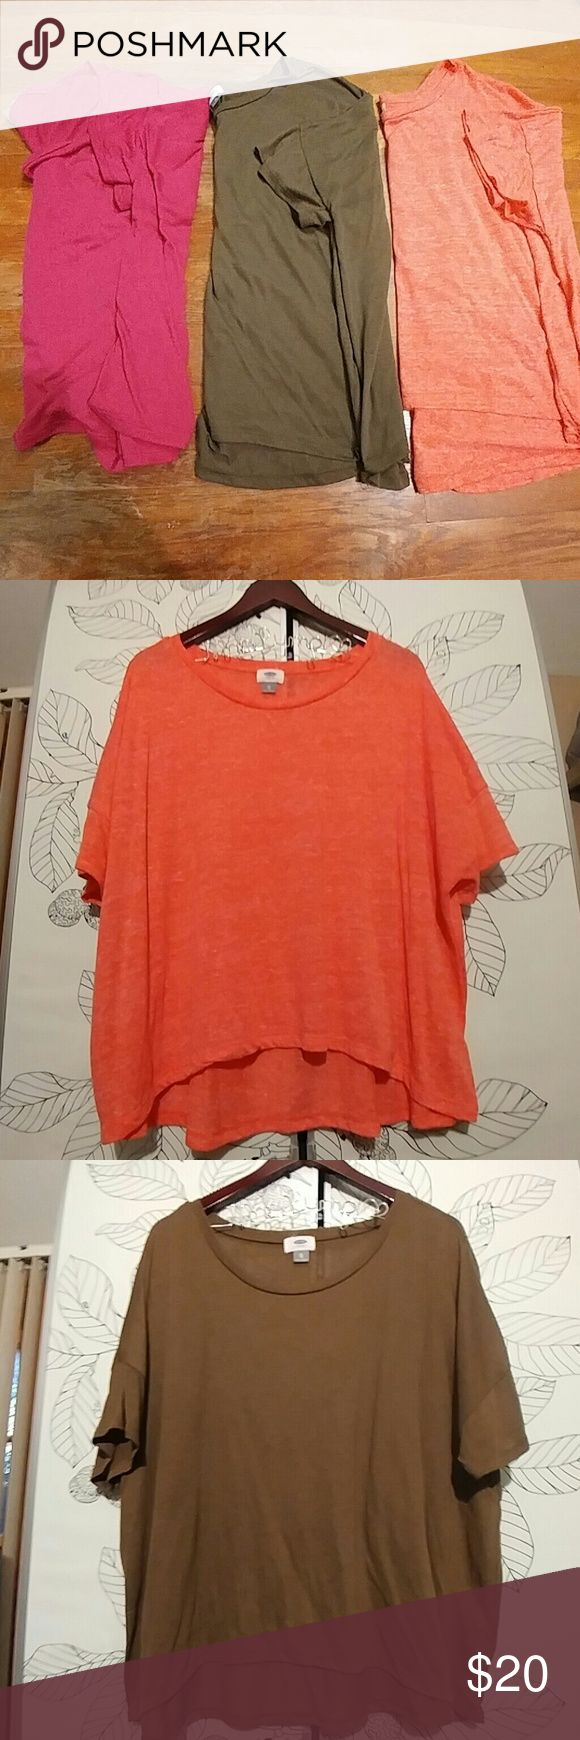 Old Navy short sleeve tops - 3 piece bundle! Old Navy short sleeve tops - 3 piece bundle! Size XL. Good condition, worn each a couple times. Bundle features one magenta top, one olive green too and one  salmon top. So soft and comfy! Old Navy Tops Tees - Short Sleeve